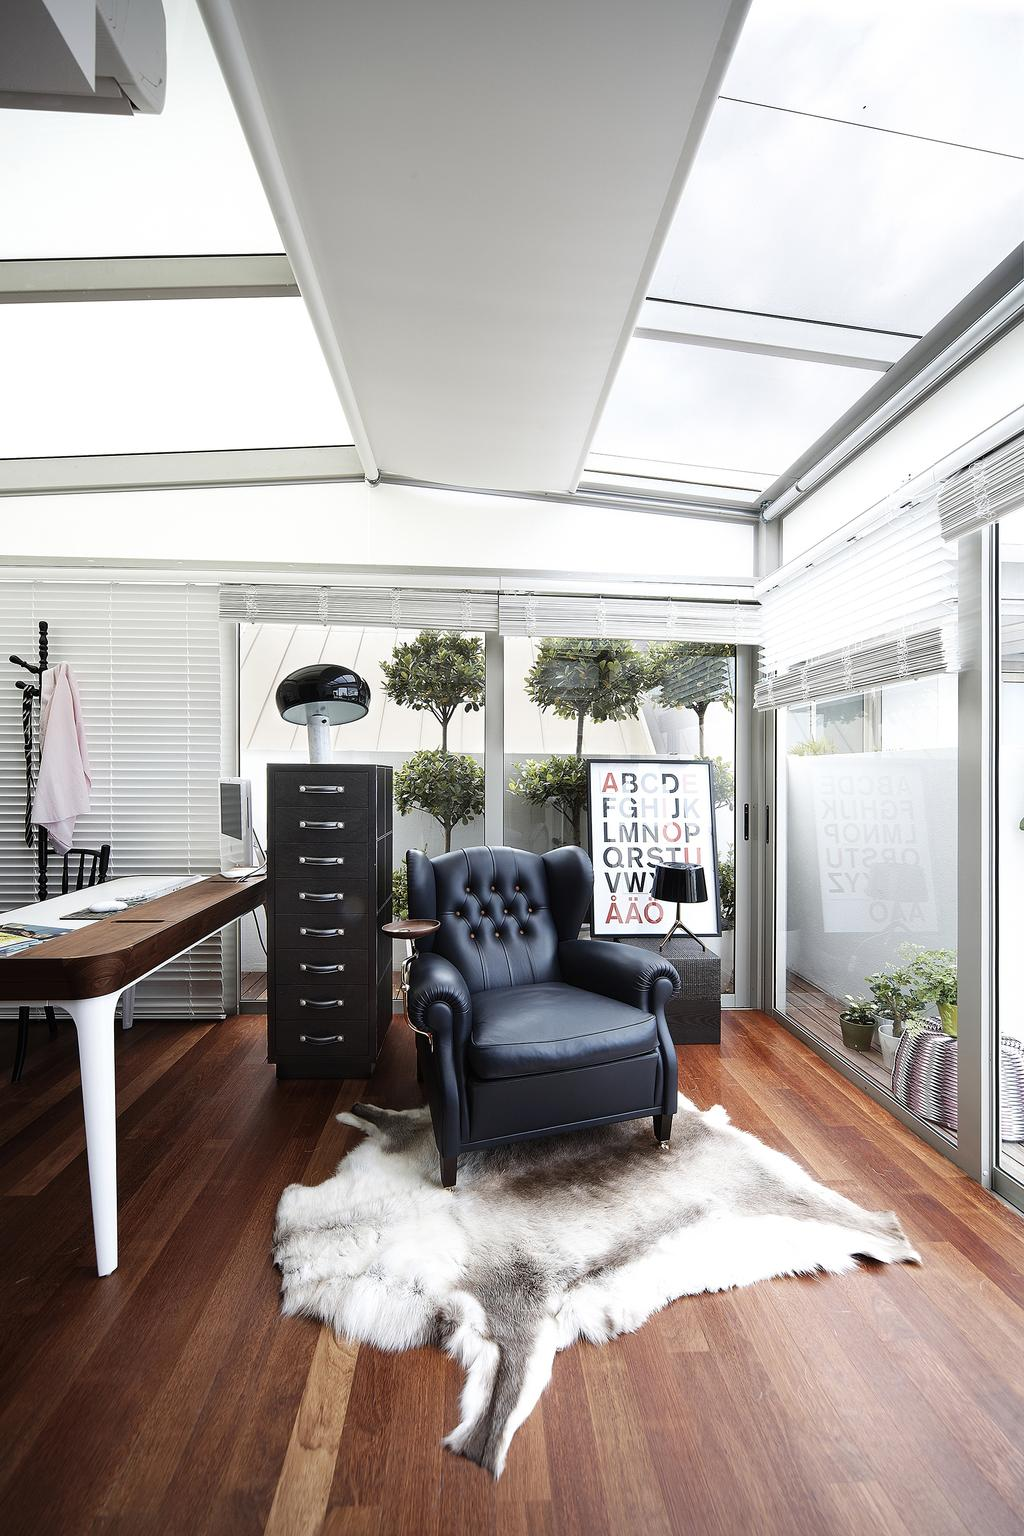 Eclectic, Condo, Study, East Coast, Interior Designer, Free Space Intent, Venetian Blinds, Parquet Flooring, Wooden Floor, Rug, Leather Arm Chair, Armchair, Chair, Furniture, Curtain, Home Decor, Window, Window Shade, Flora, Jar, Plant, Potted Plant, Pottery, Vase